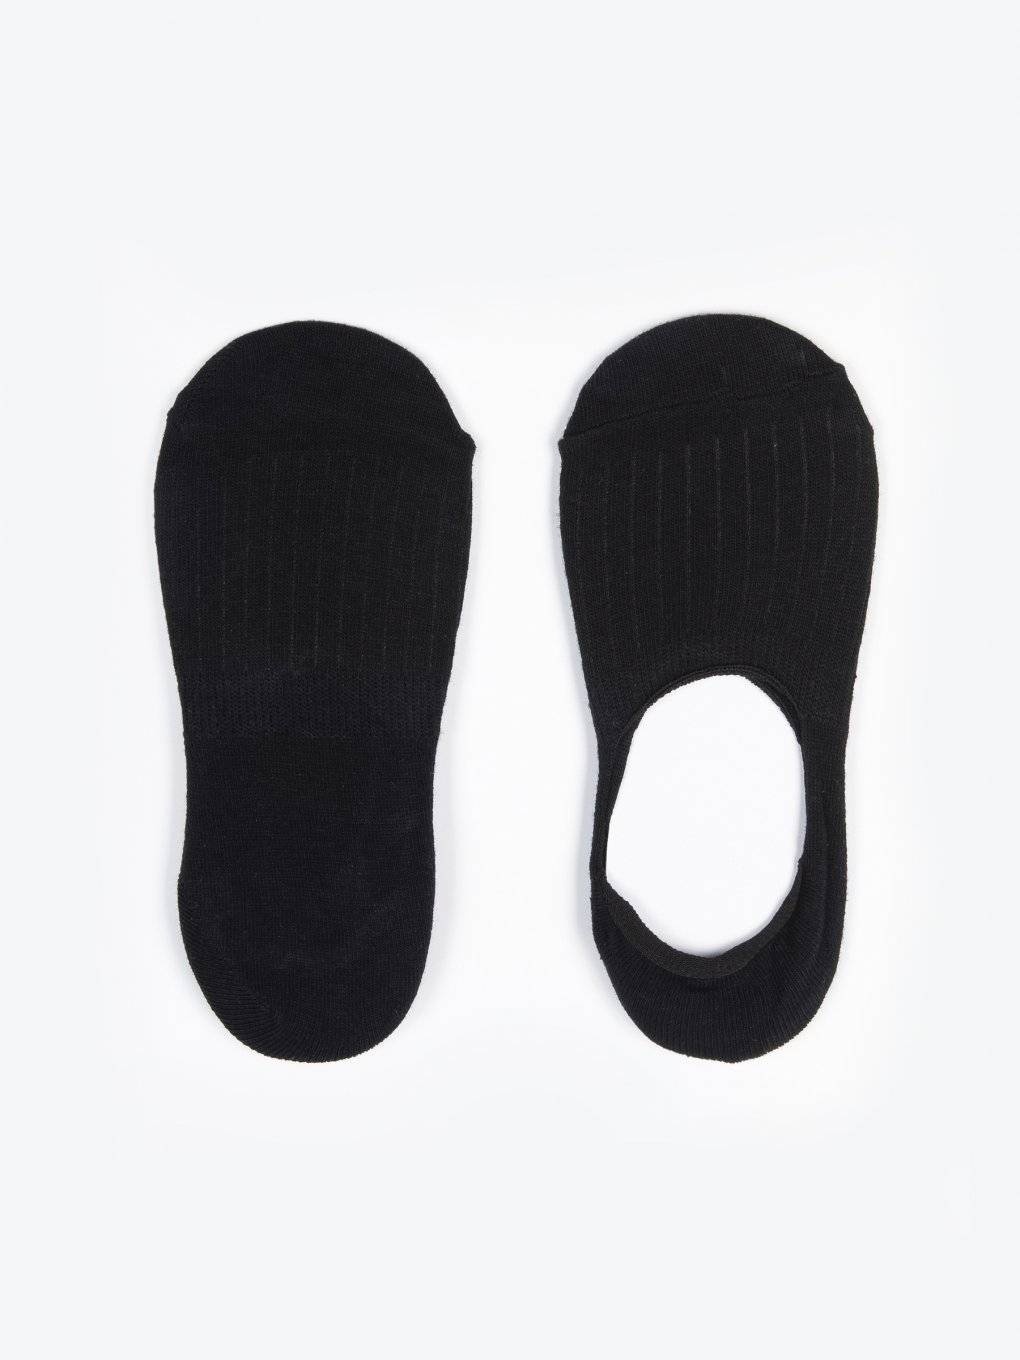 2 pack footies with silicone heel